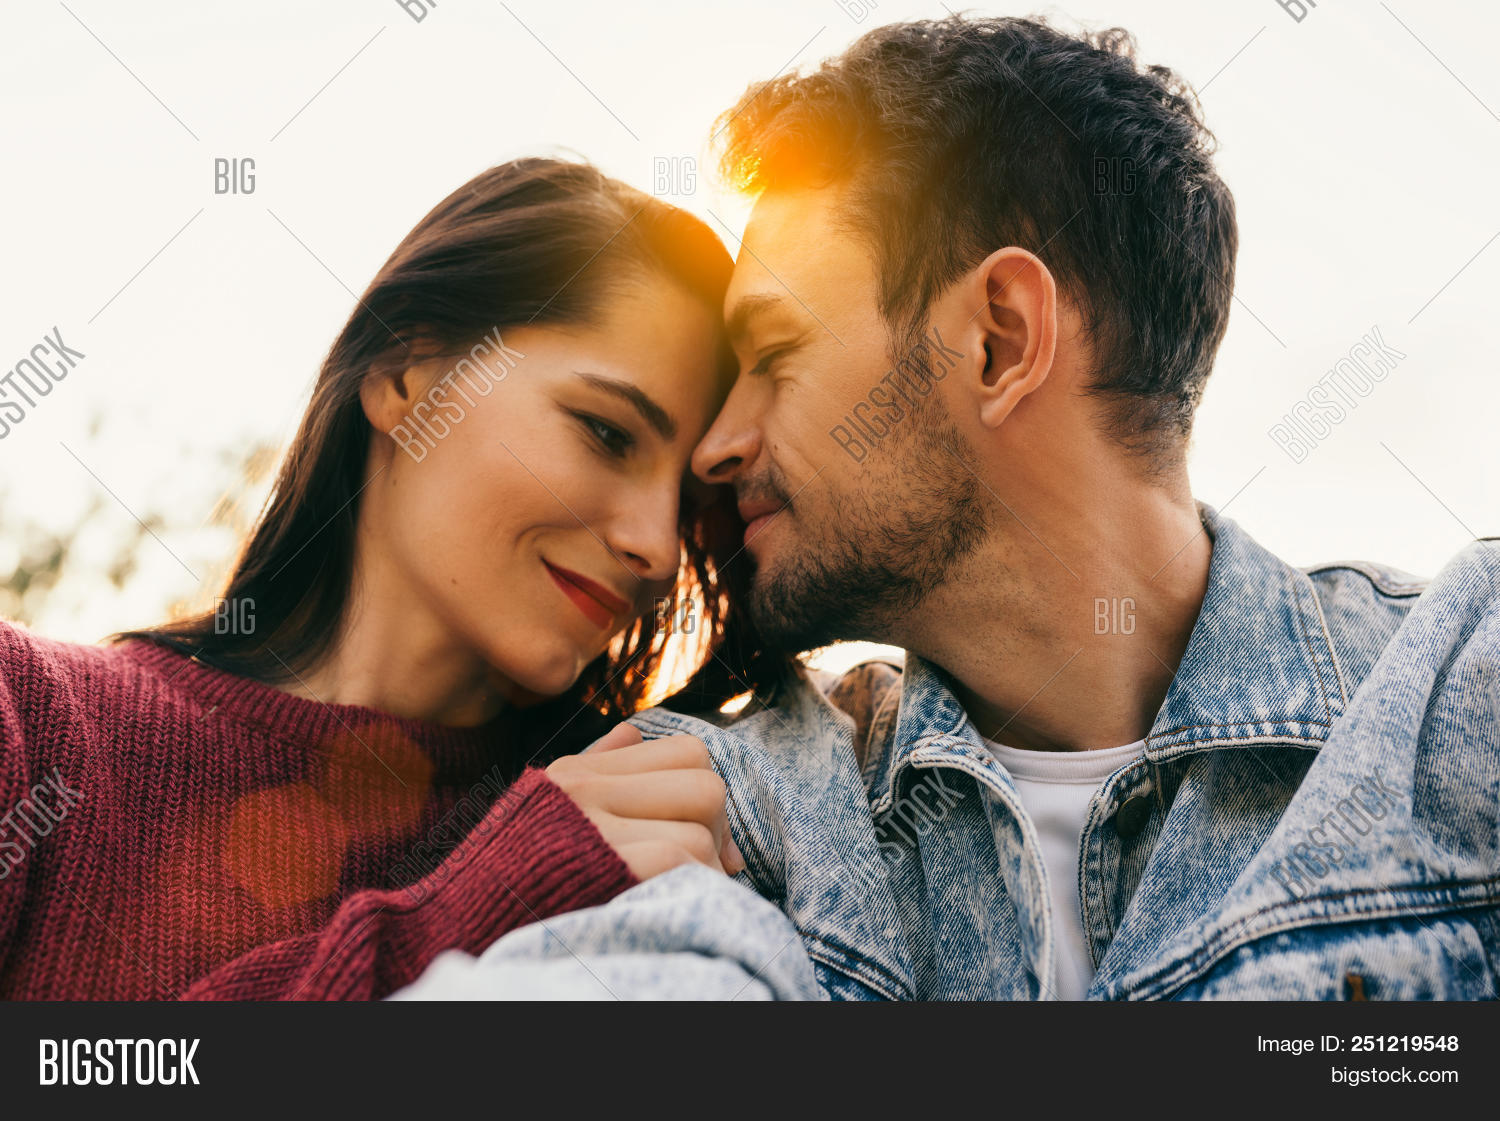 attractive,autumn,beautiful,boyfriend,carefree,caucasian,couple,dating,embracing,emotional,family,fashion,female,freedom,friends,girl,girlfriend,handsome,happiness,happy,hipster,honeymoon,horizontal,lifestyle,love,lovely,lovers,male,man,nature,outdoor,people,portrait,pretty,relationship,romantic,self-portrait,selfie,smile,spring,summer,sunlight,sunrise,sunset,together,two,valentine,woman,young,youth